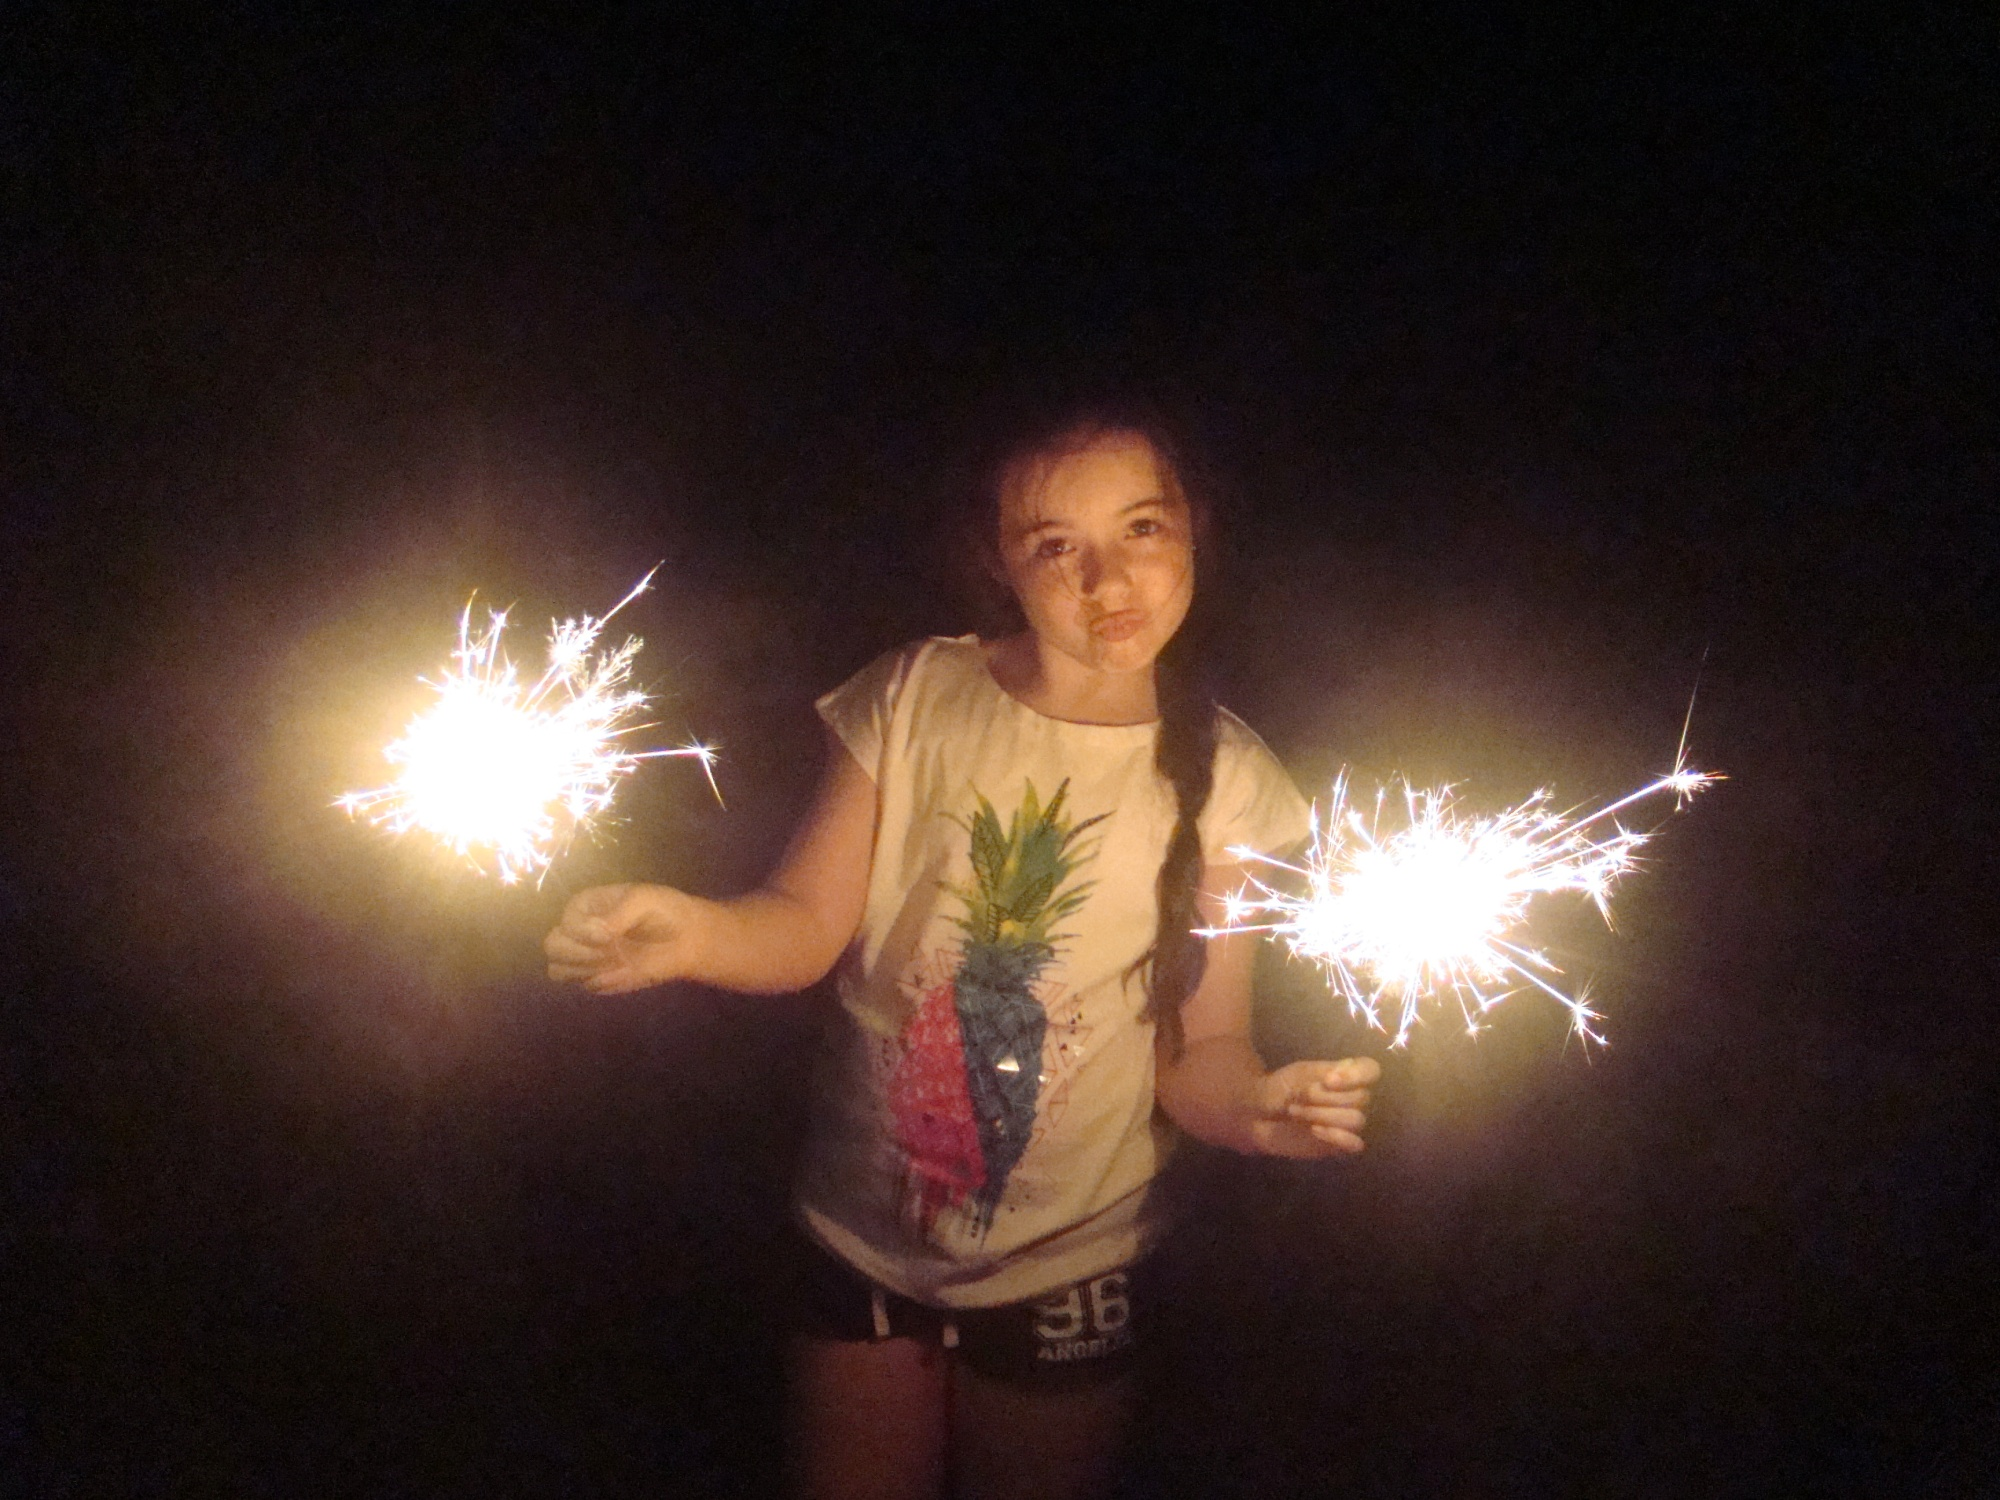 Tookii things to do with kids with sparklers one of the outdoor activities for kids